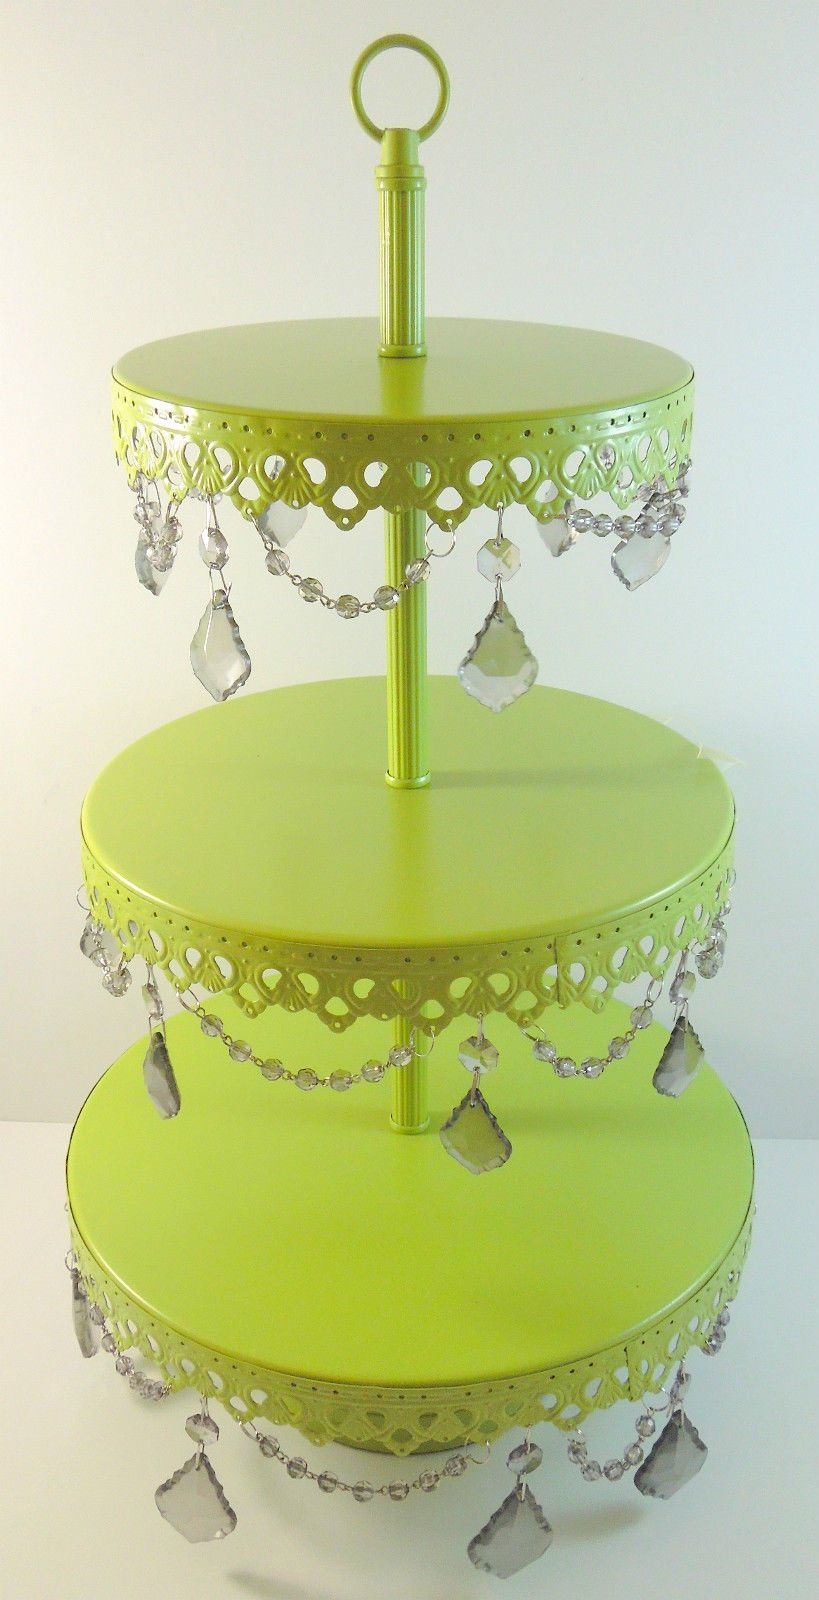 Opulent vintage kitchen green vintage crystal jeweled cake stand